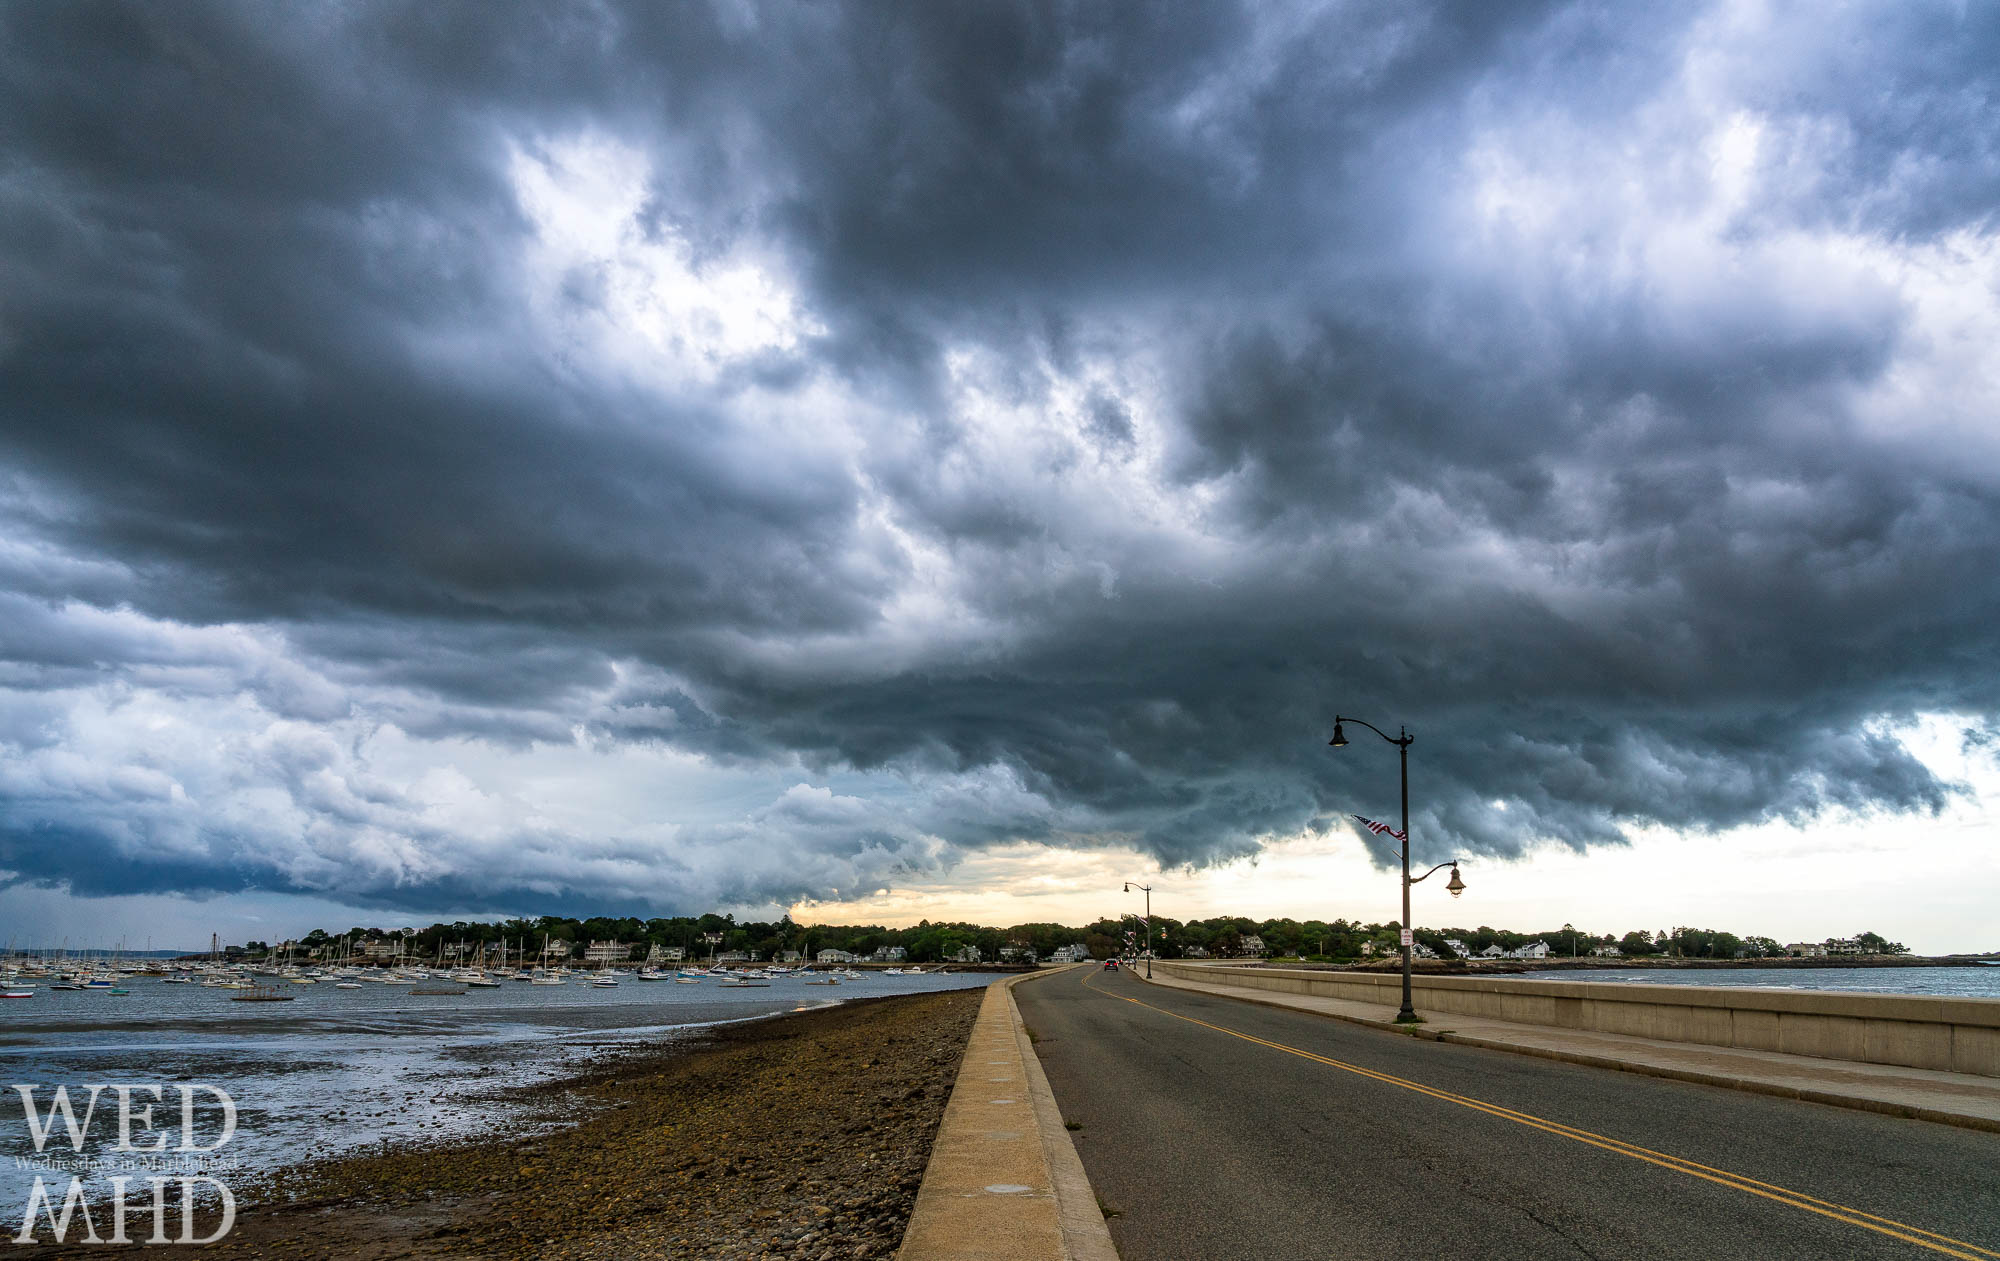 A passing storm crosses over the causeway creating a dramatic sky over Marblehead Neck on a late August evening